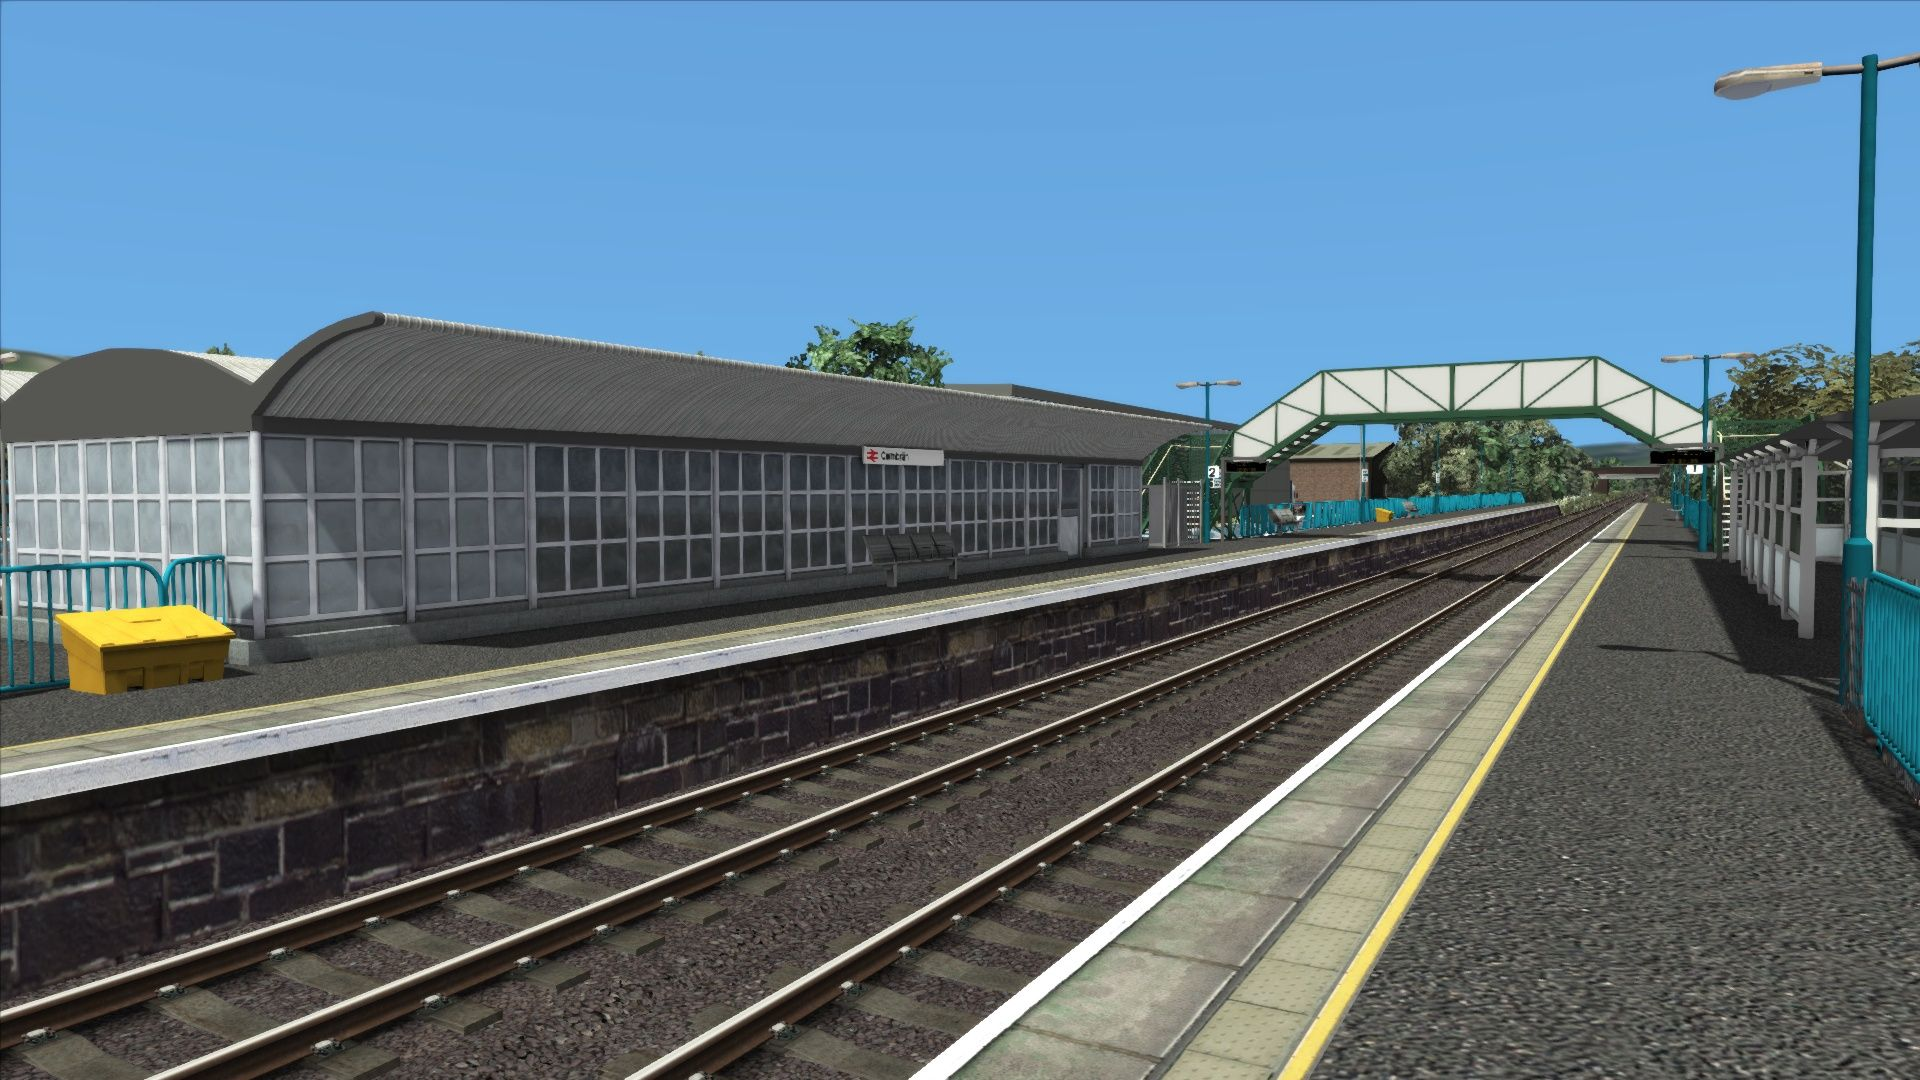 Screenshot_[BMG] Welsh Marches Line - Newport to Shrewsbury_51.65700--3.015